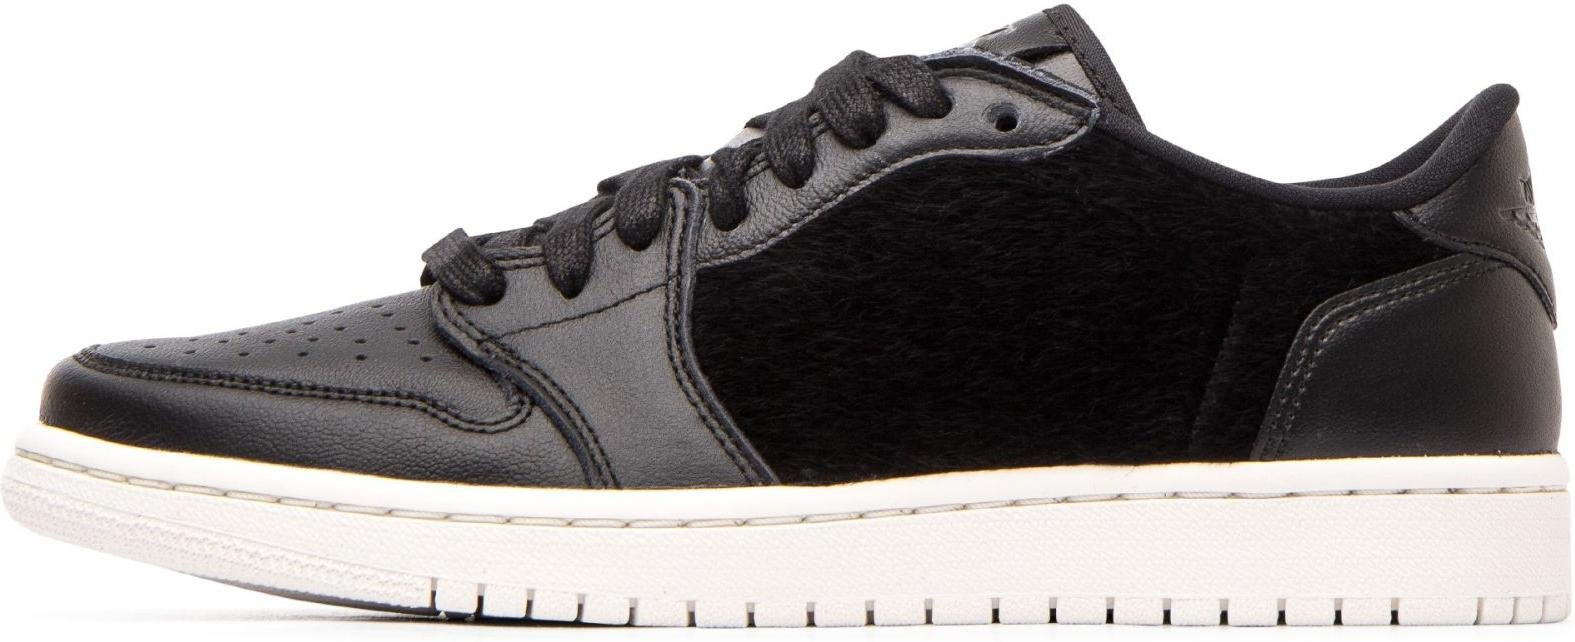 Obuv Jordan WMNS AIR JORDAN 1 RETRO LOW NS